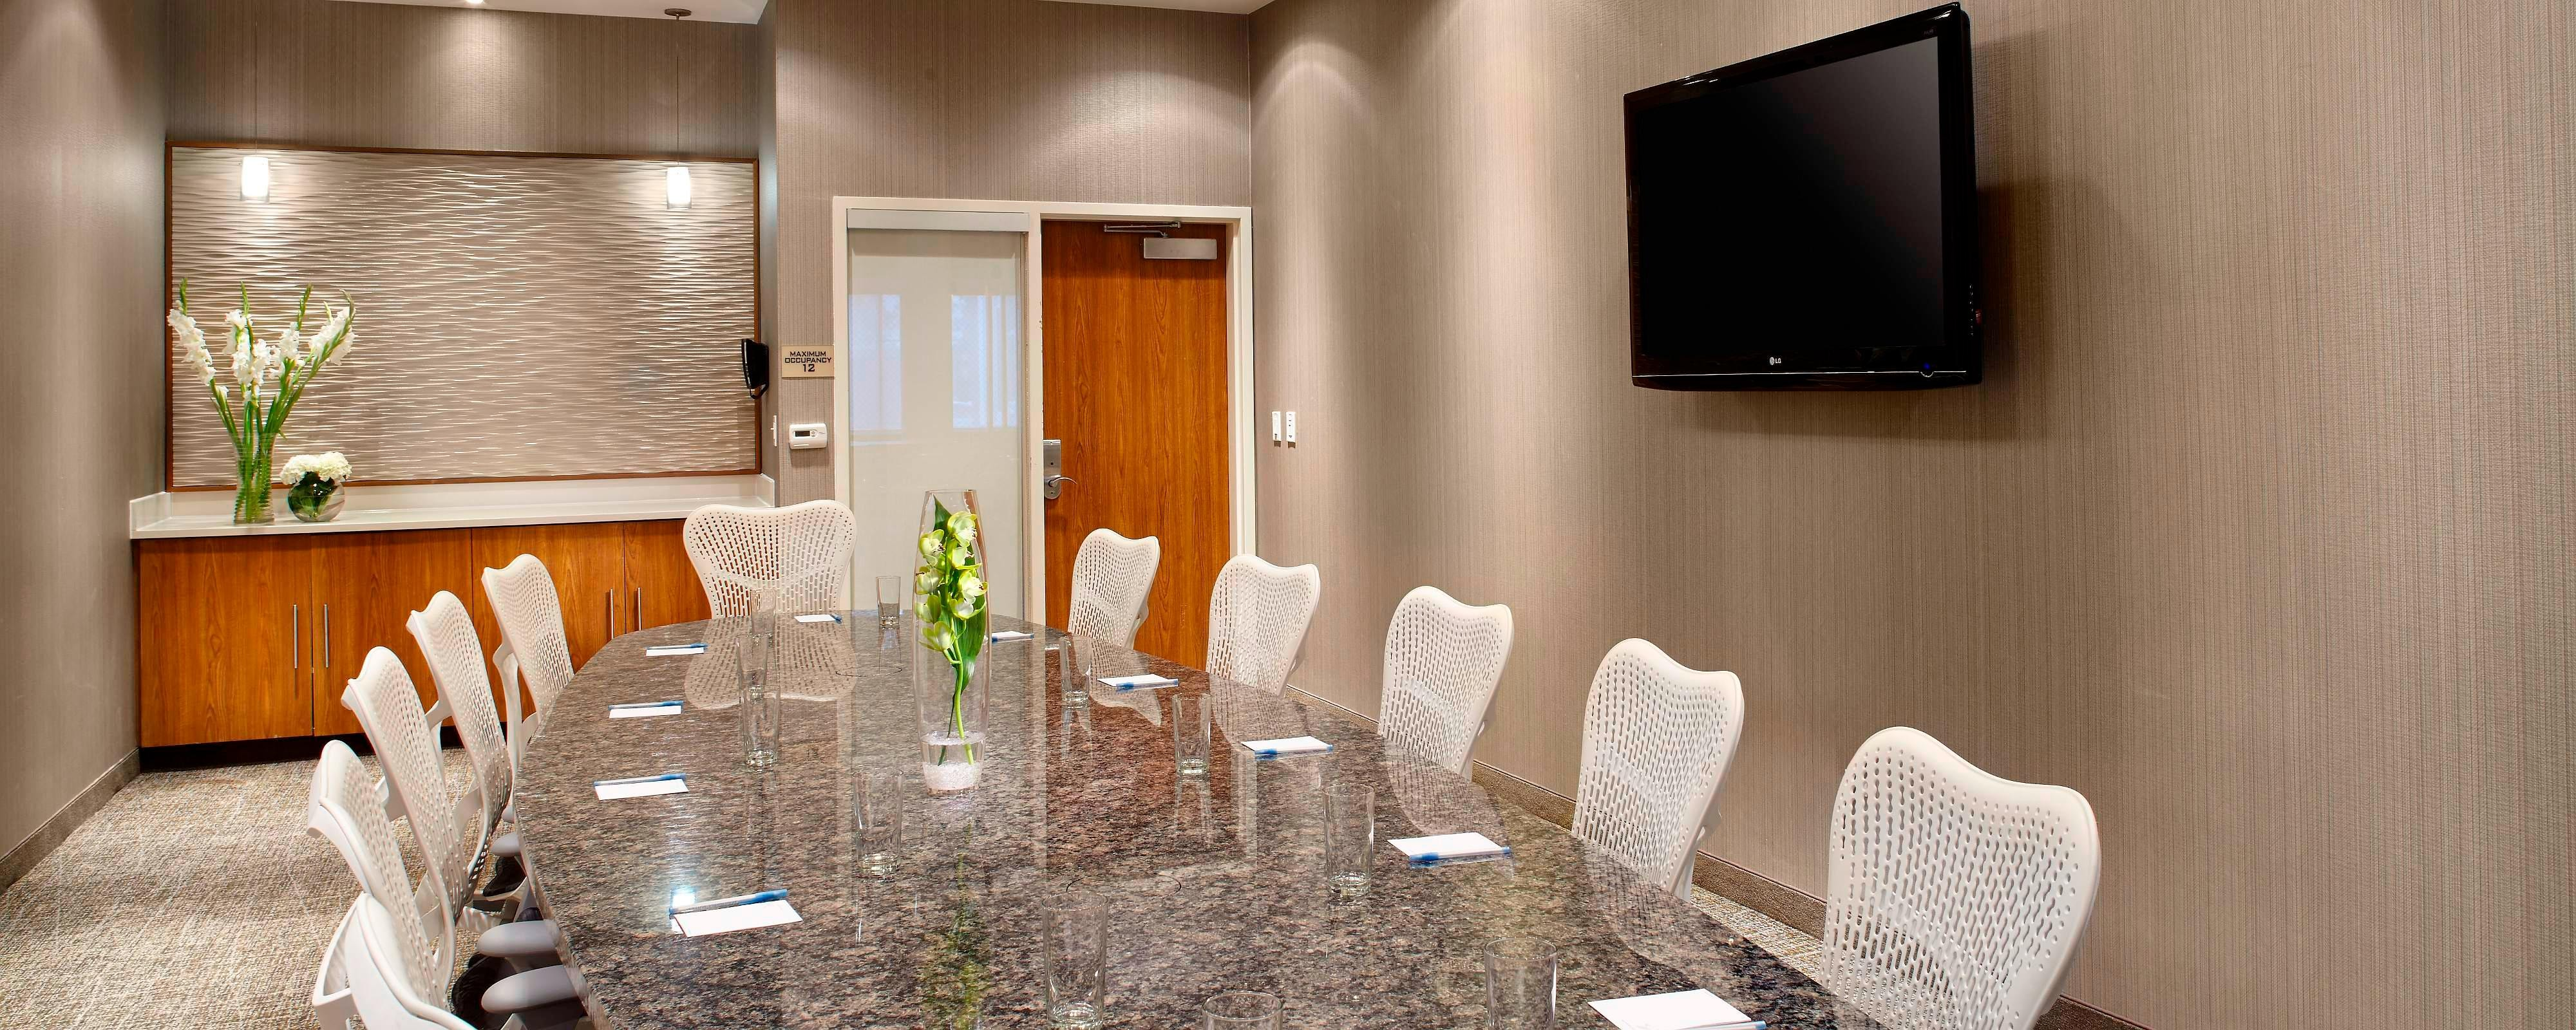 Houston AP Wedding Guest Accommodations